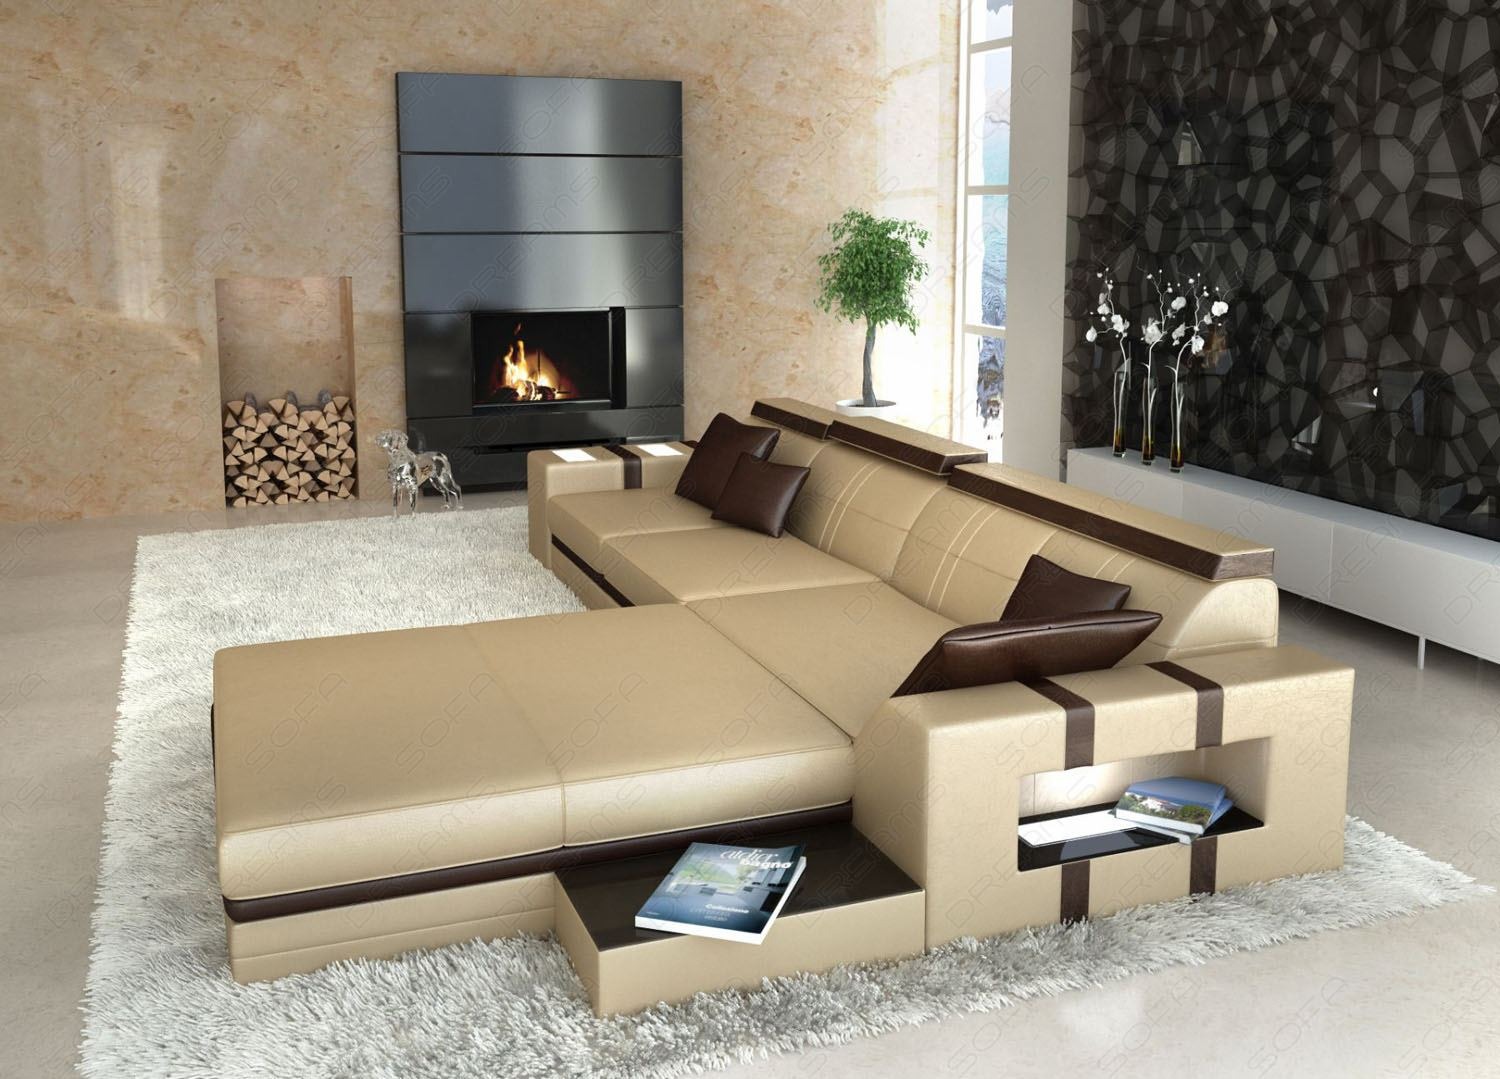 asti l shaped leather couch sofa with light interior. Black Bedroom Furniture Sets. Home Design Ideas